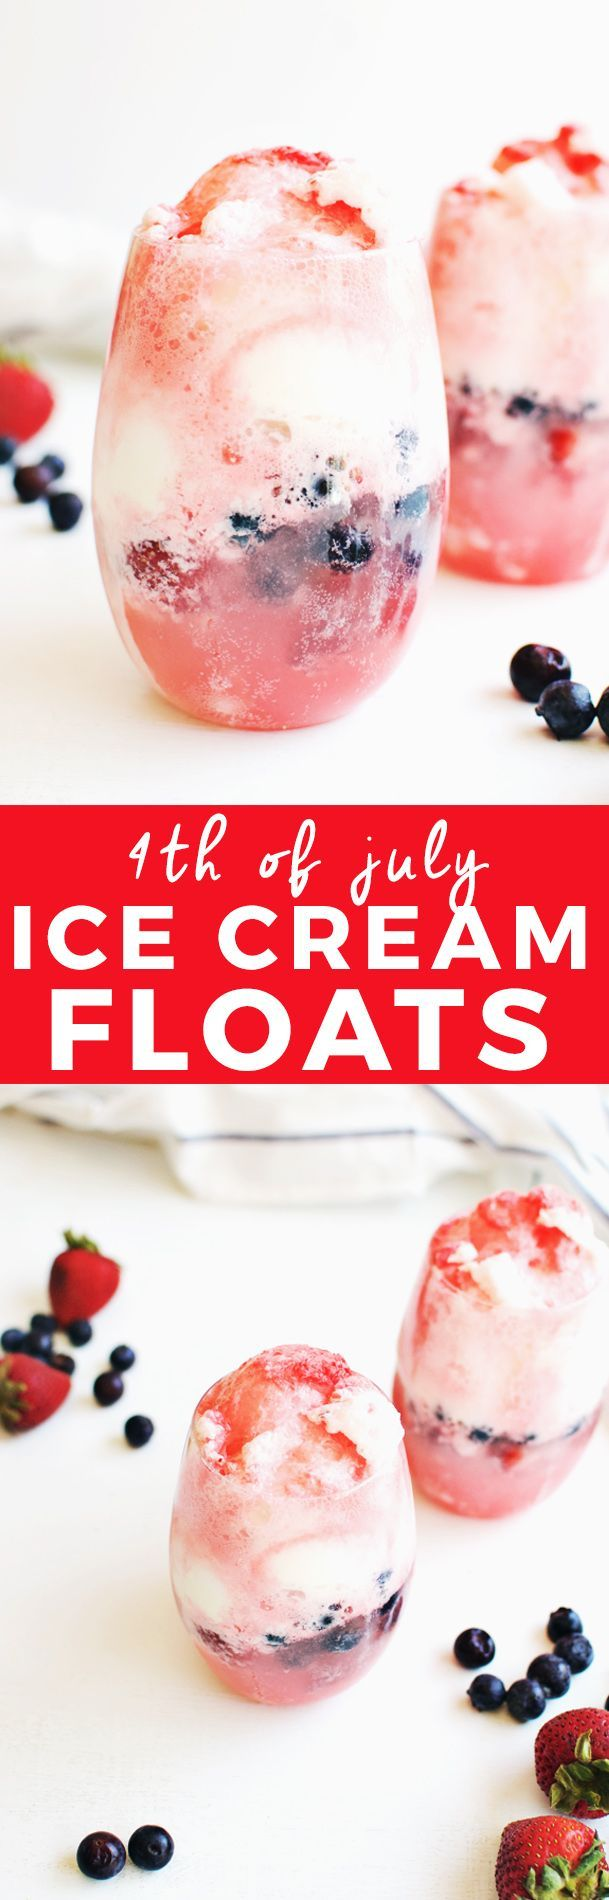 Red, White And Blue 4th of July Ice Cream Floats